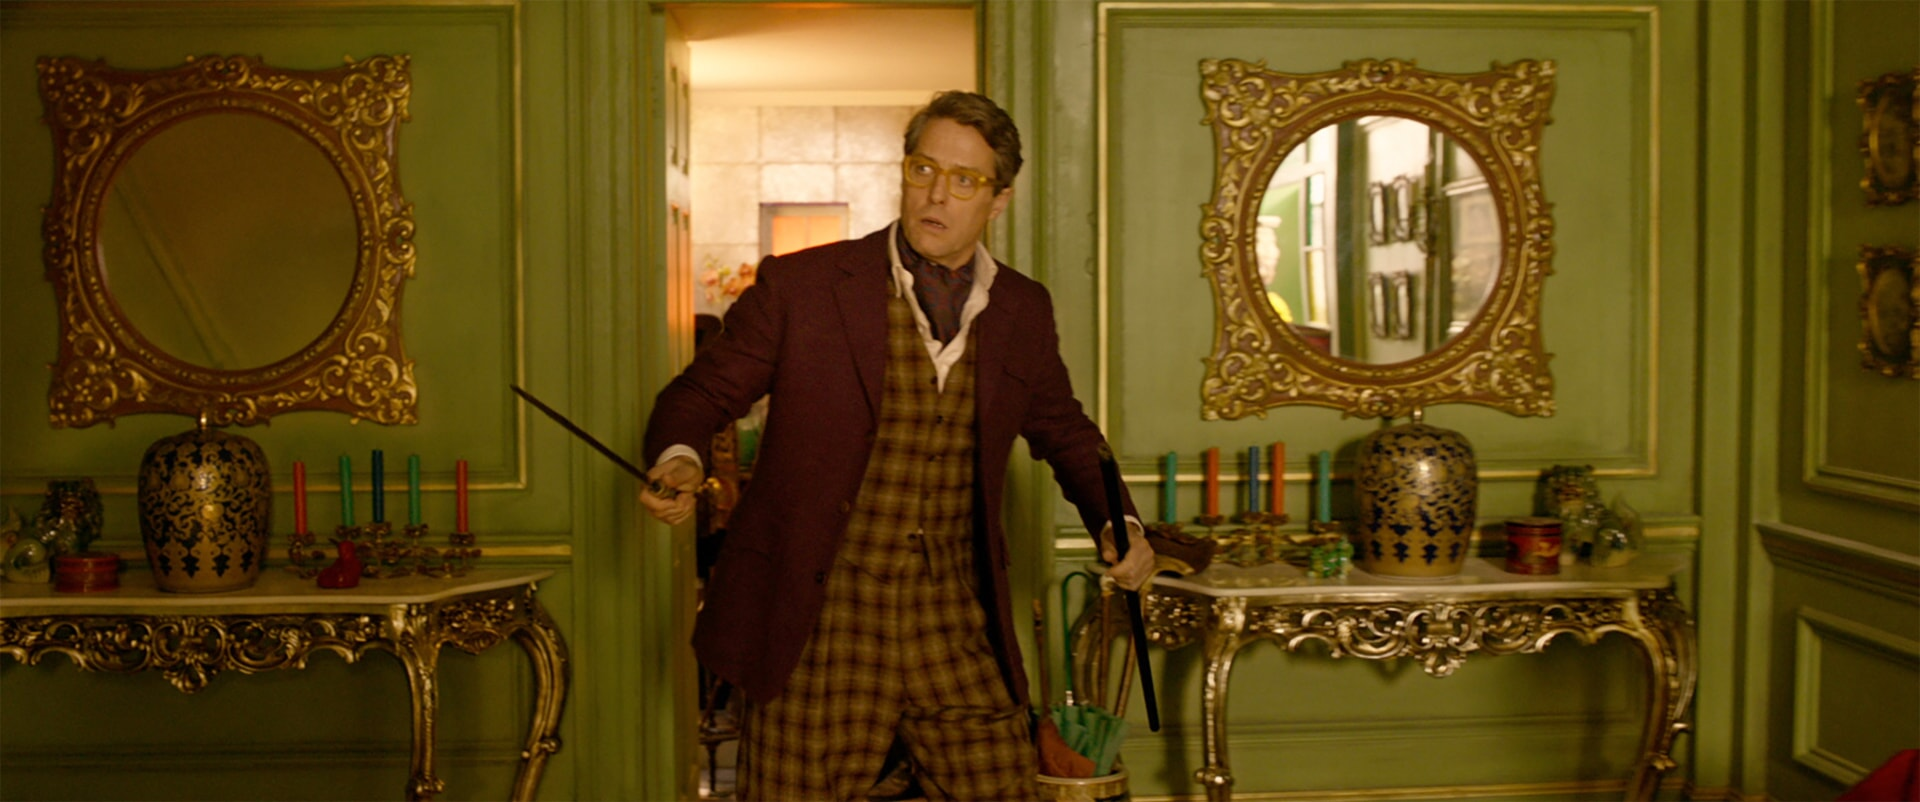 """HUGH GRANT as Phoenix Buchanan in the family adventure """"PADDINGTON 2,"""" from Warner Bros. Pictures and STUDIOCANAL, in association with Anton Capital Entertainment S.C.A., a Warner Bros. Pictures release."""